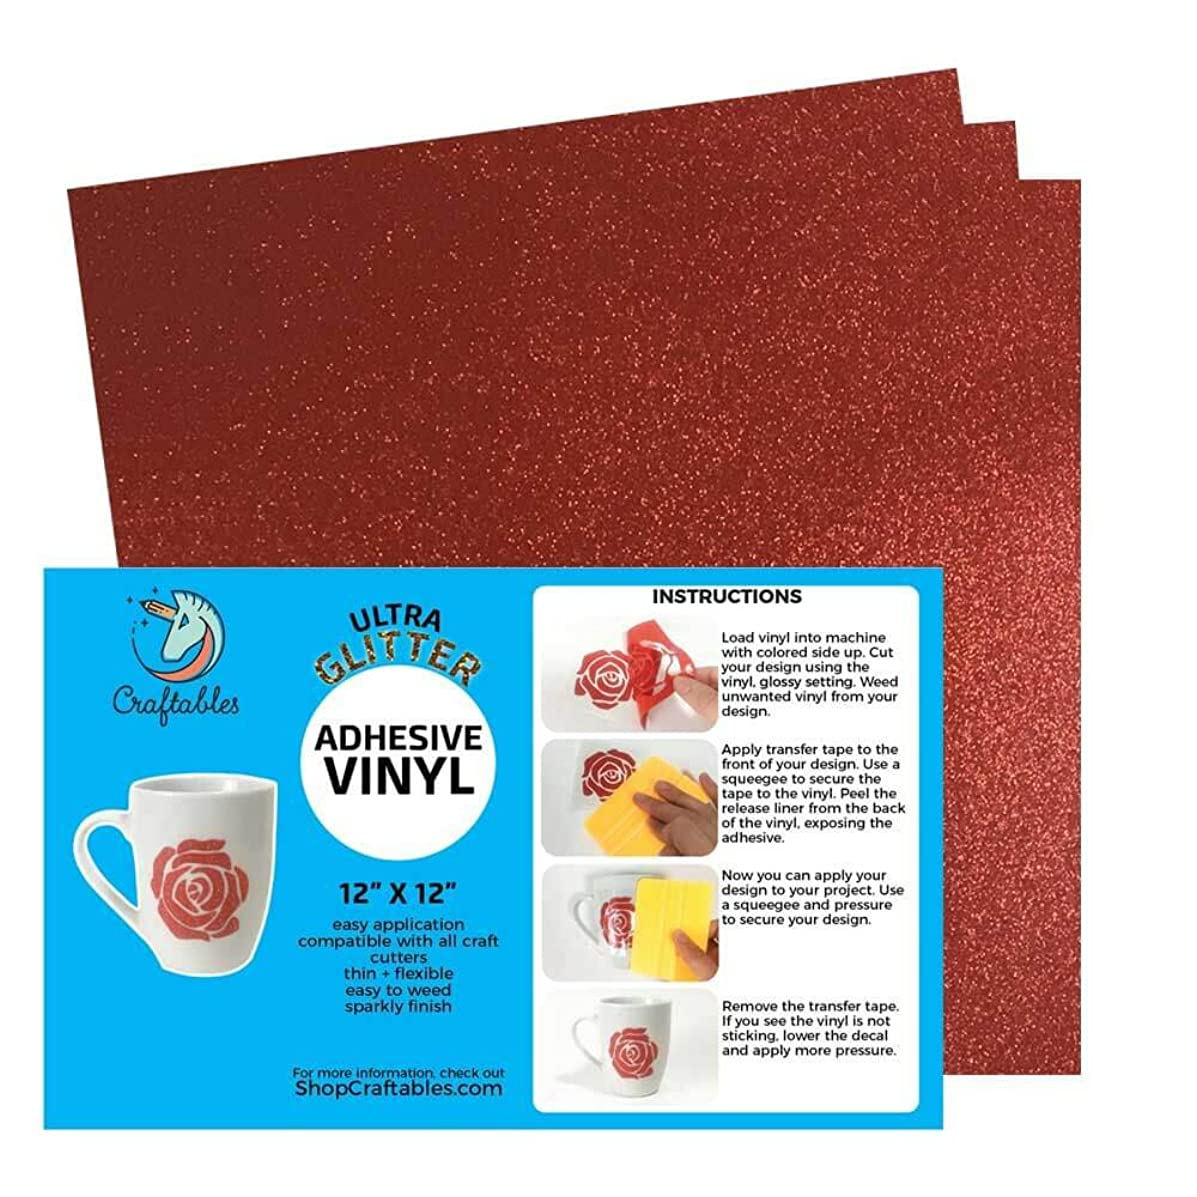 Craftables Dark Red Ultra Glitter Adhesive Vinyl for Cricut, Silhouette Cameo, and Craft Cutters - (3) 12in x 12in Sheets